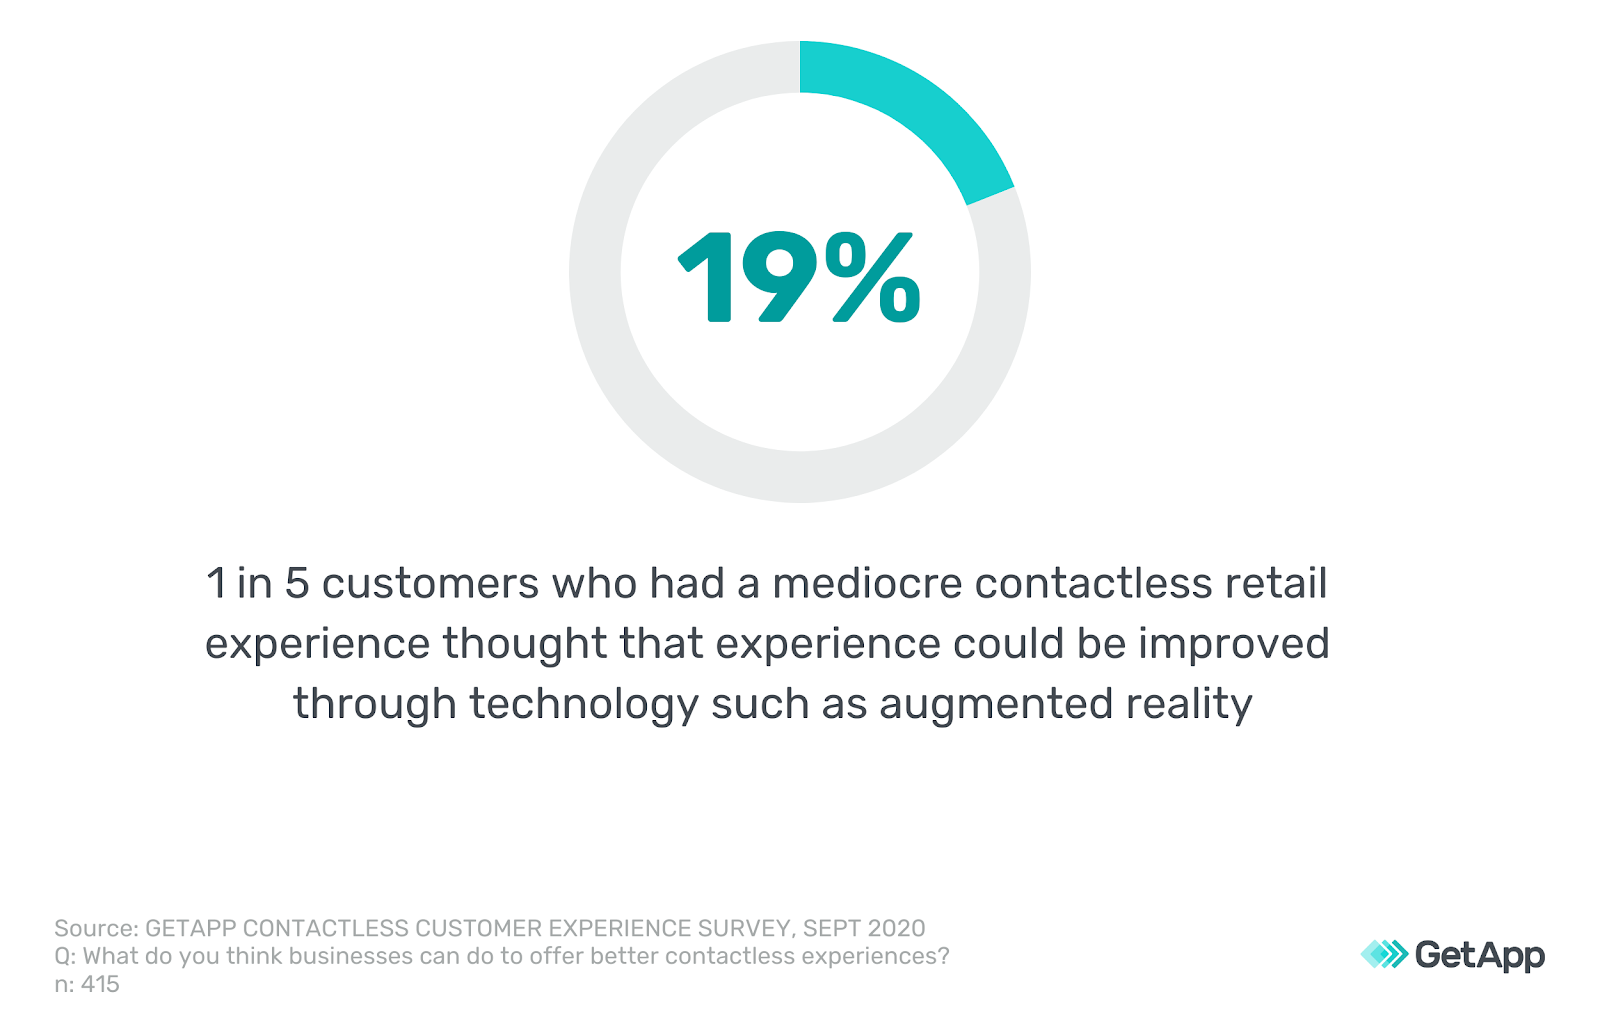 1/5 customers thought their retail experience could be improved through technology such as augmented reality.